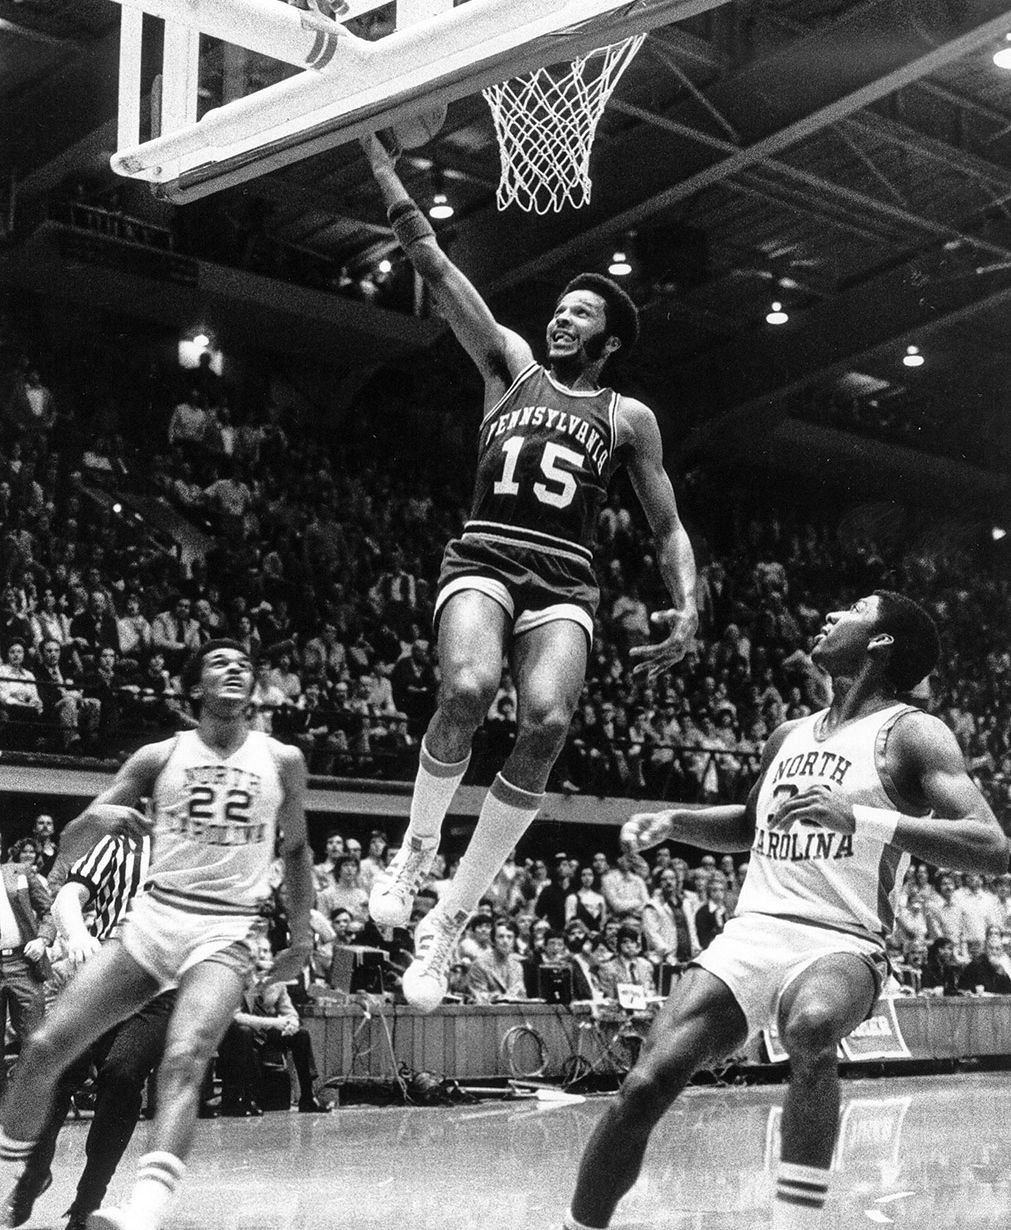 Price averaged 23.7 points per game in the 1979 NCAA tournament, and played briefly in the NBA.